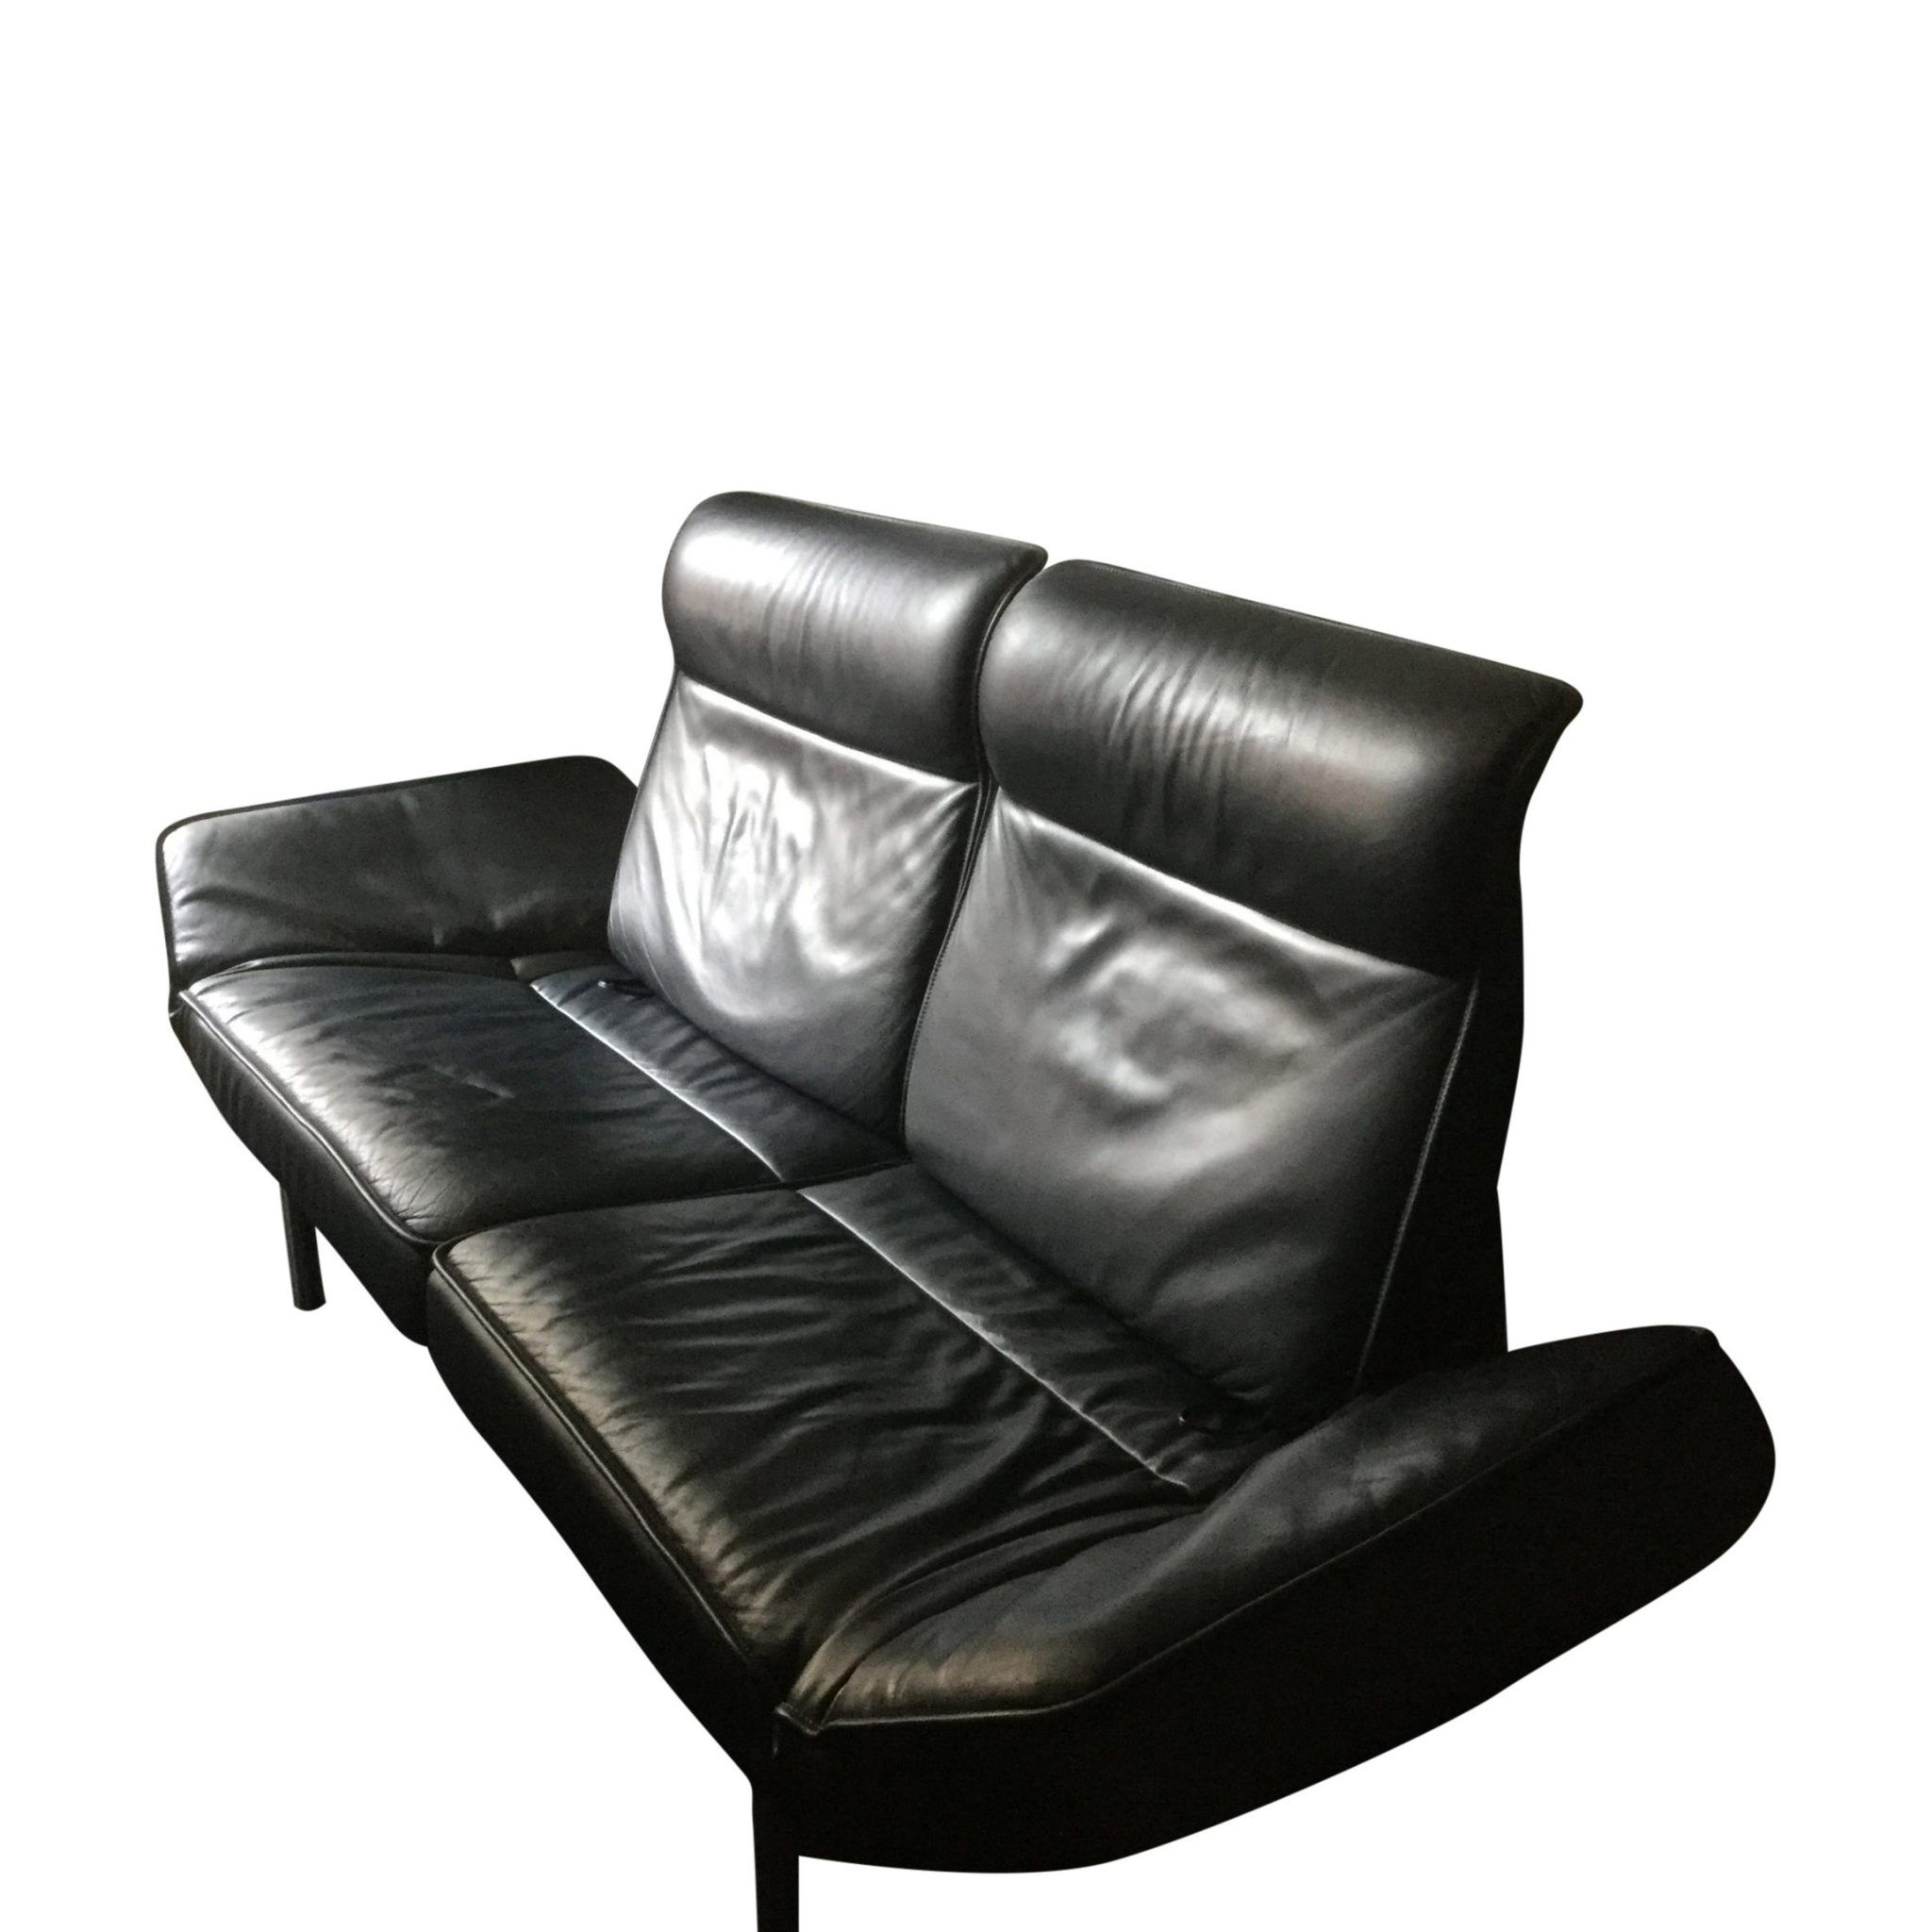 Retro Inflatable Sofa Ds 450 De Sede Leather Sofa Layer Sofas Retro Furniture